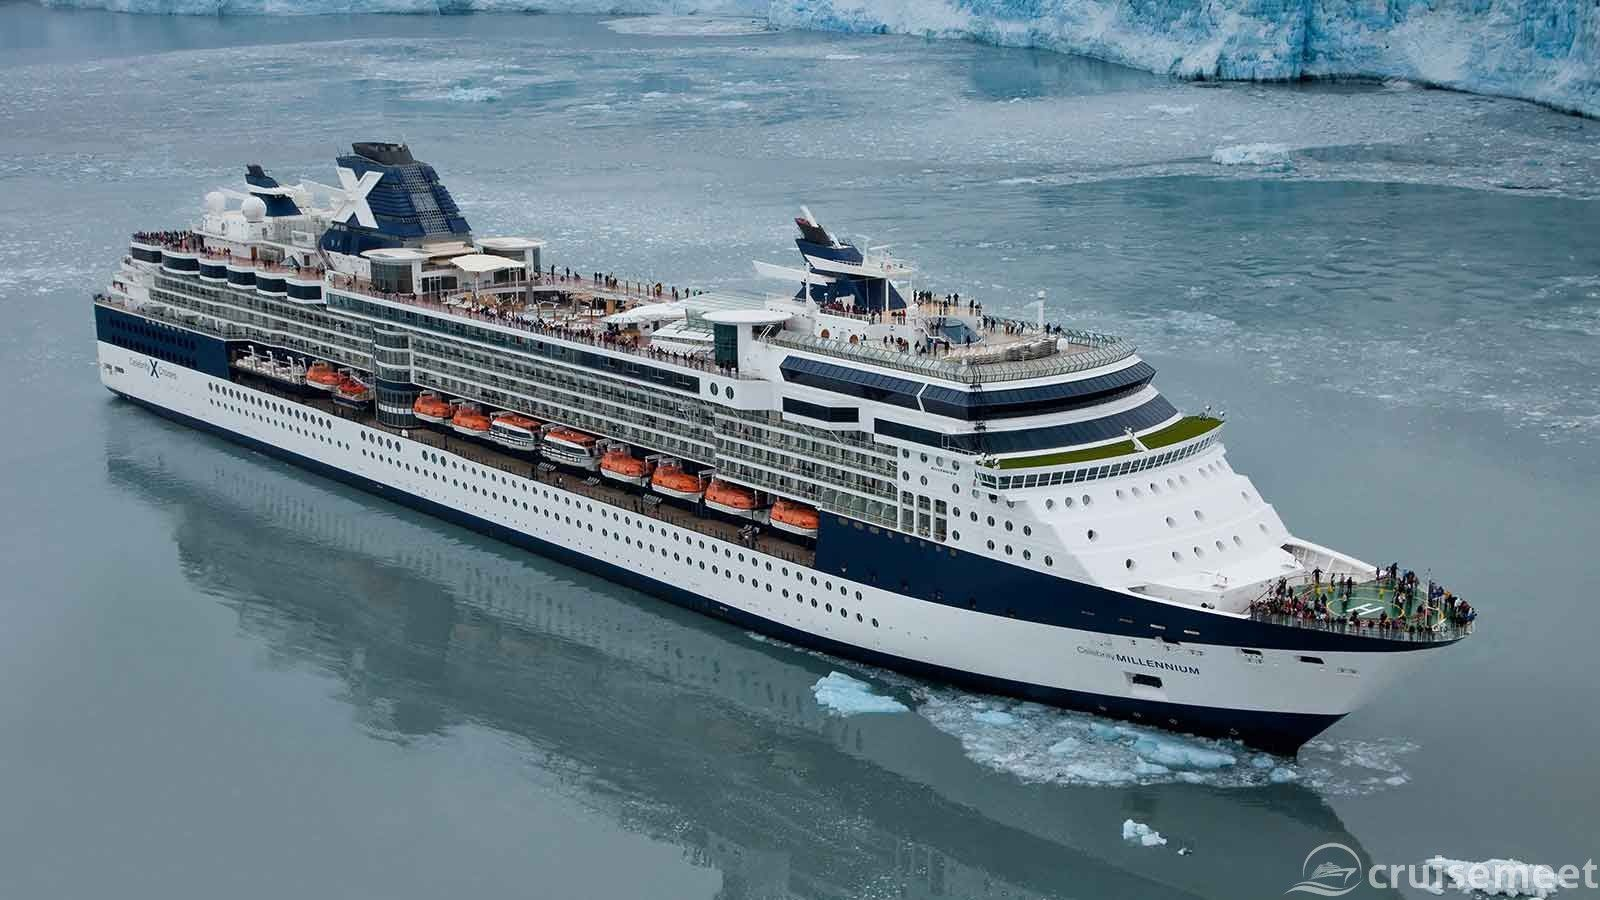 Cruise Ship profile of Celebrity Cruises Celebrity